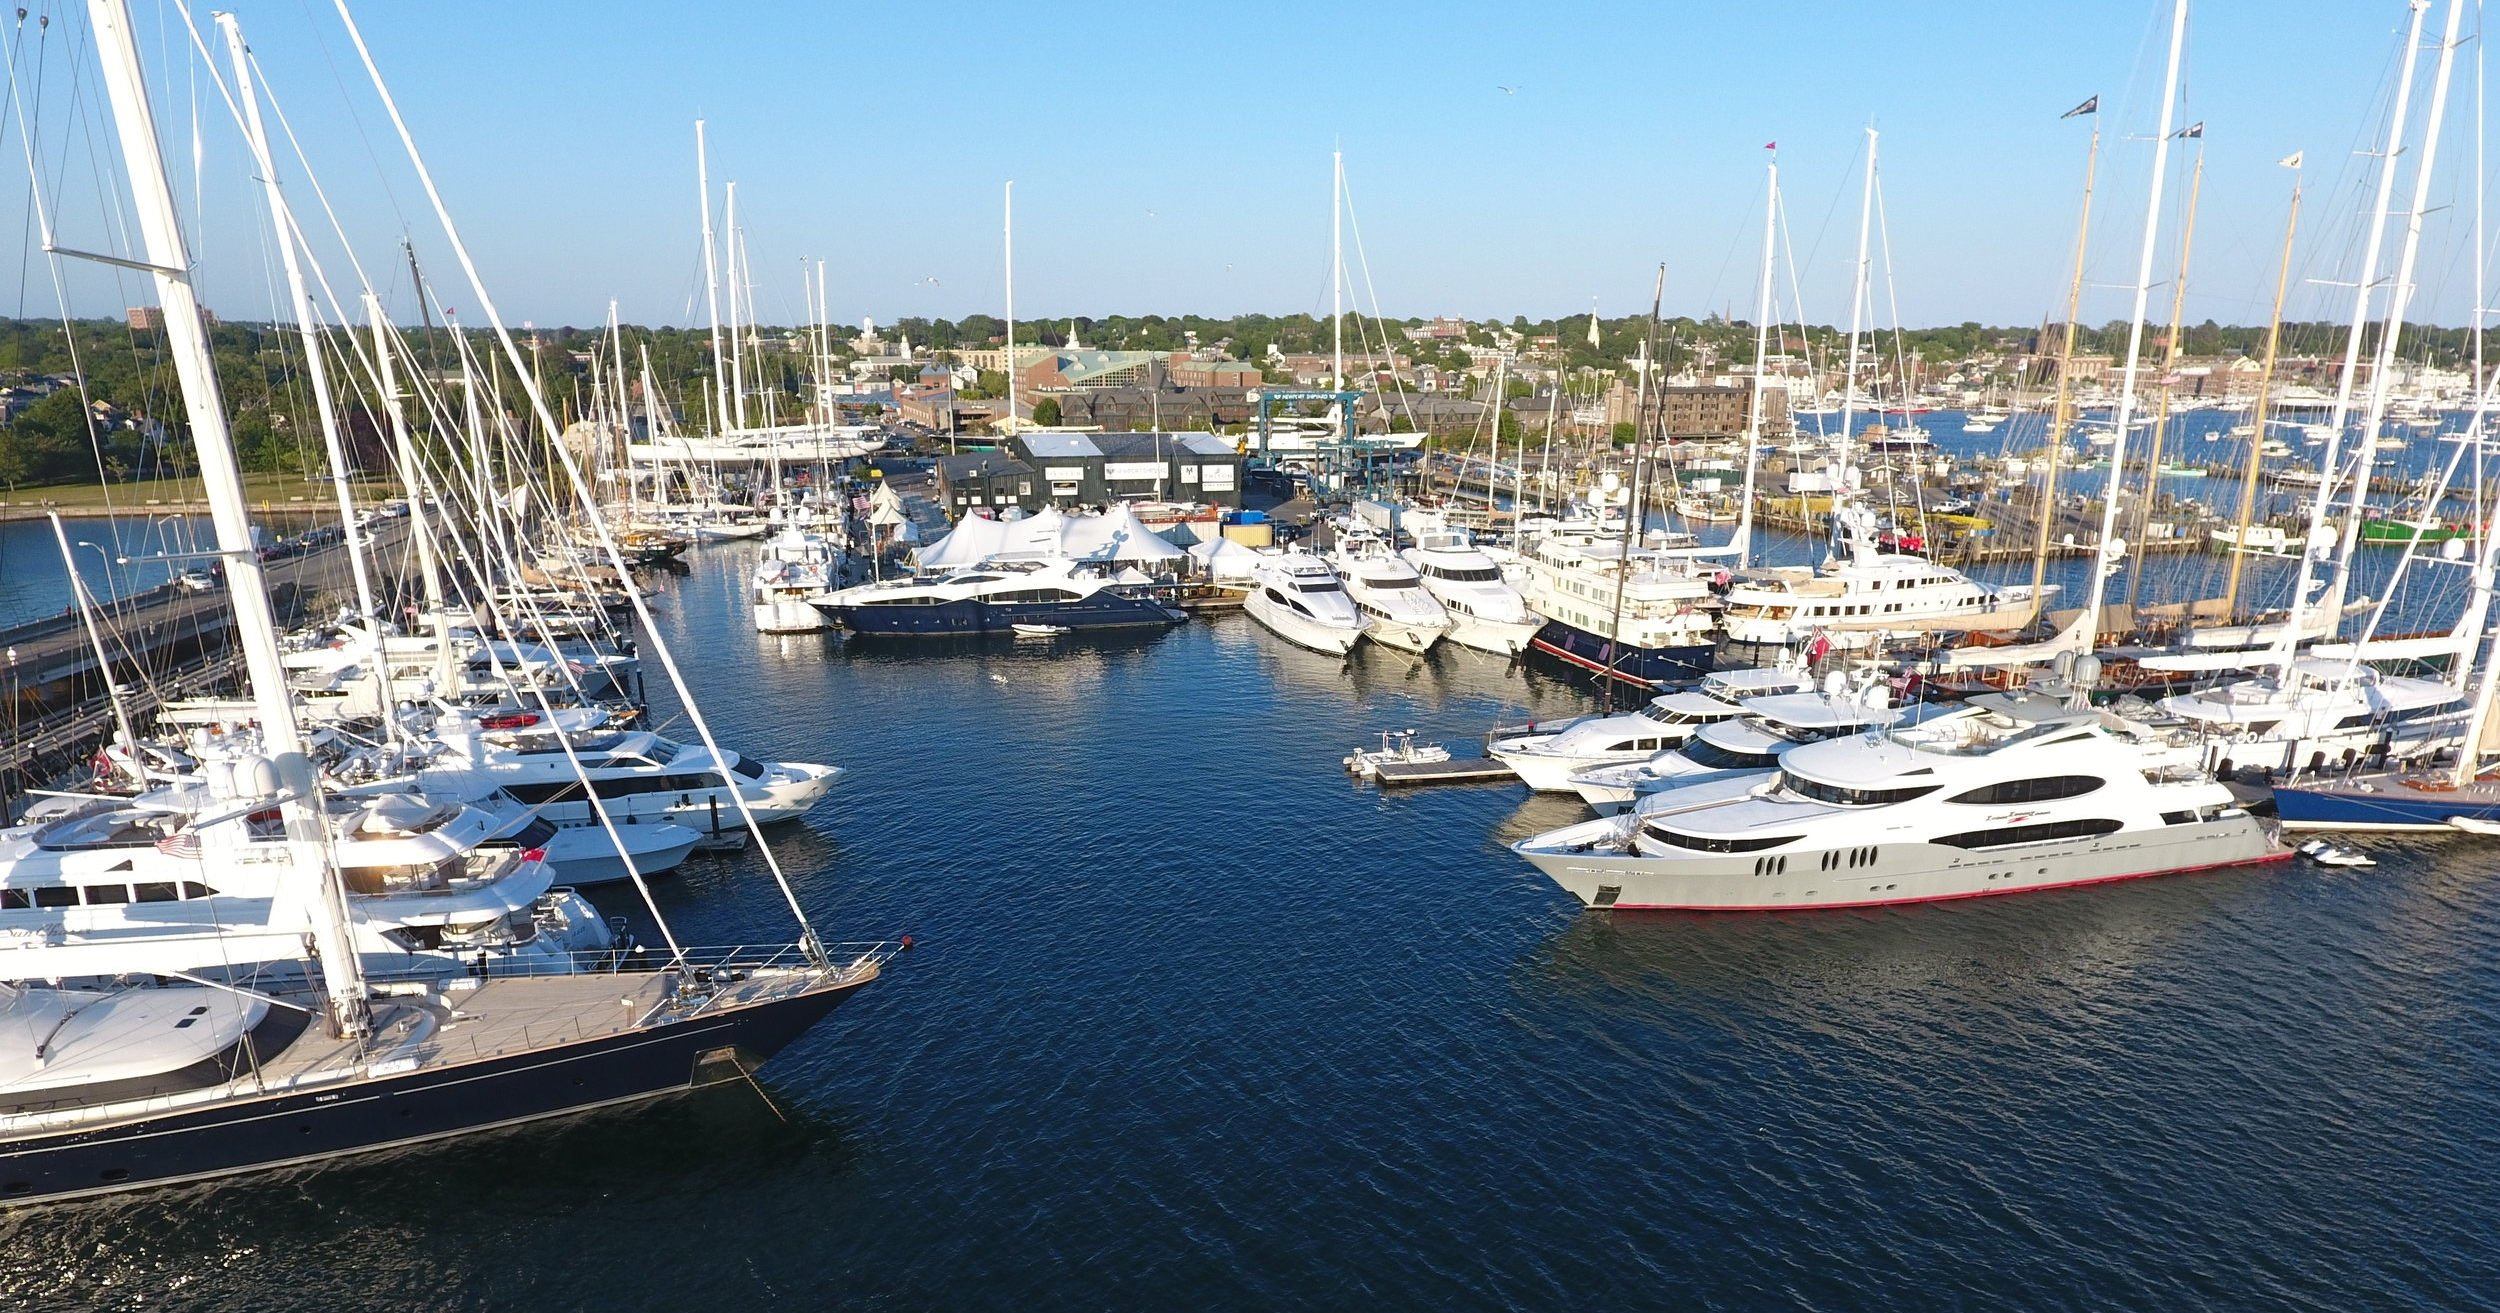 Newport Shipyard, which hosts and services visiting superyachts year-'round, is the home of Newport Charter Yacht Show presented by Helly Hansen. (photo by Billy Black)